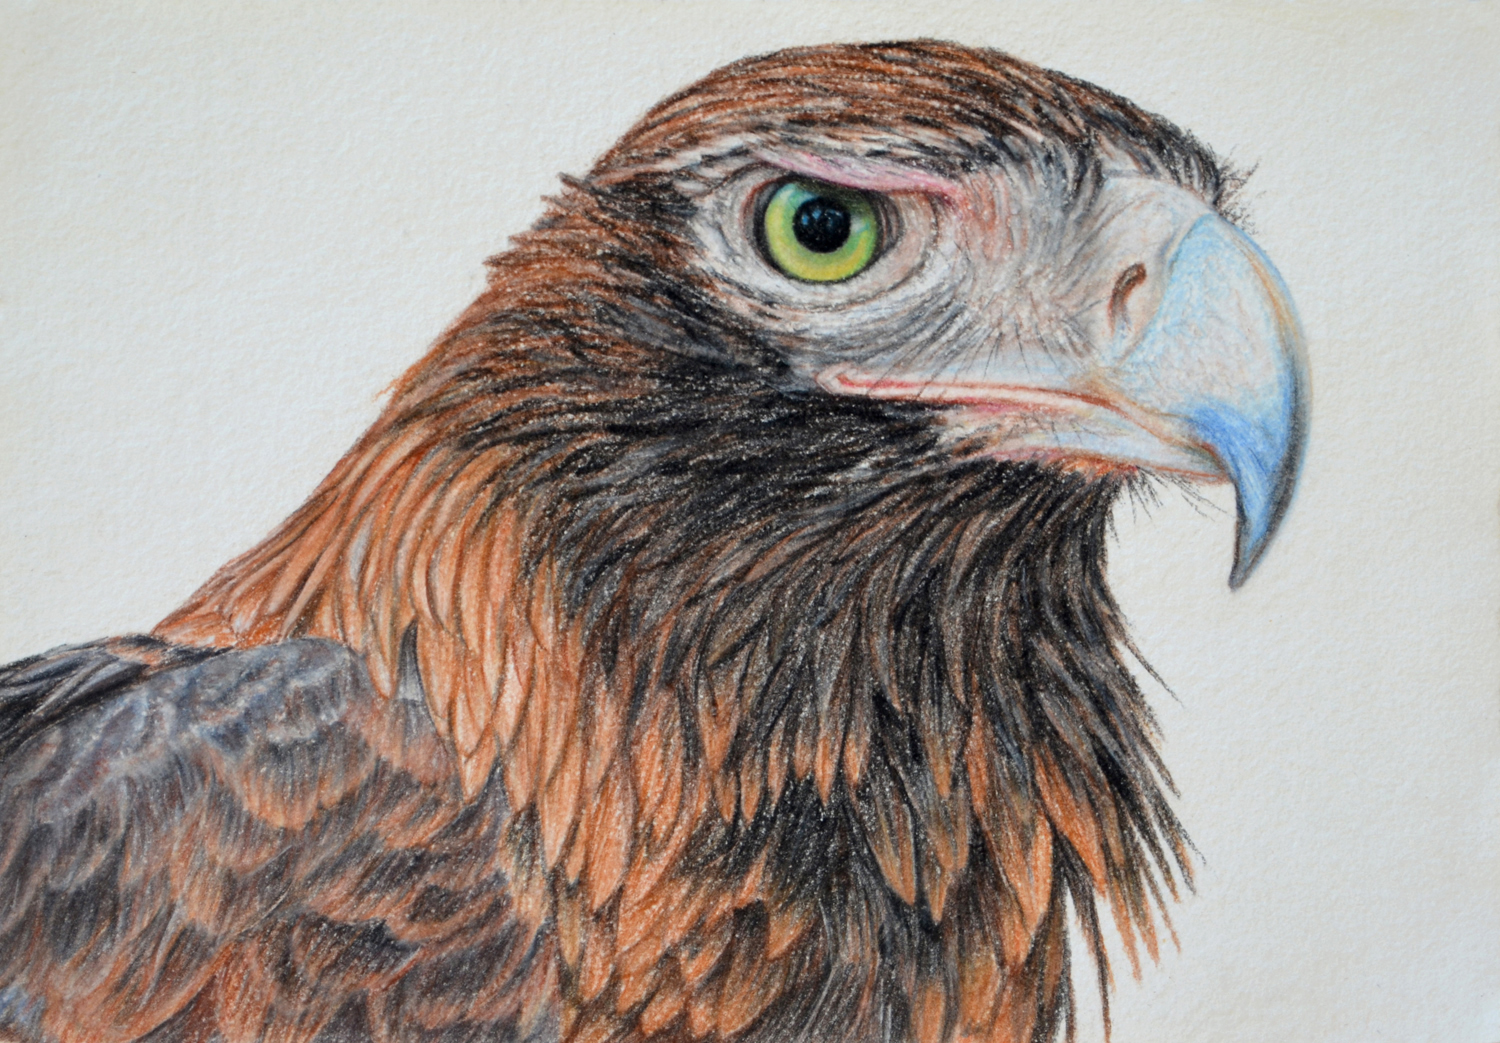 Wedge-tailed Eagle  21 x 30 cm  Drawing, Carbothello pastel on handmade paper  $650 framed   click to view in Birdland series gallery 1